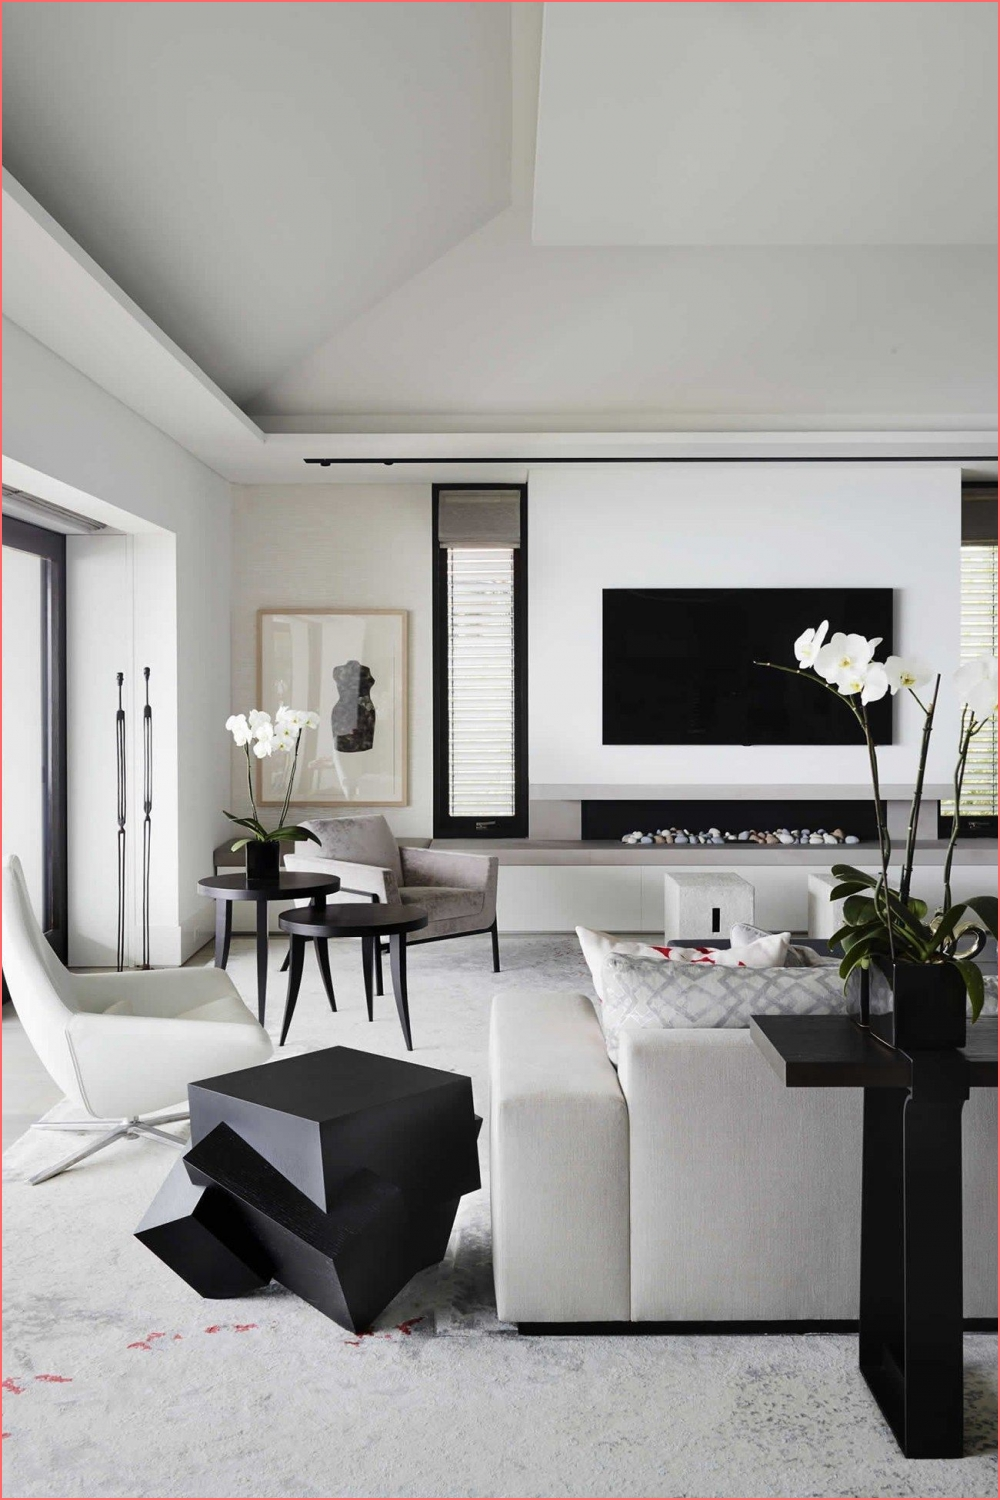 Abstract Art Black contemporary living rooms design on modern monochromatic living room on modern monochromatic living room post on 2020-11-21 16:24:24